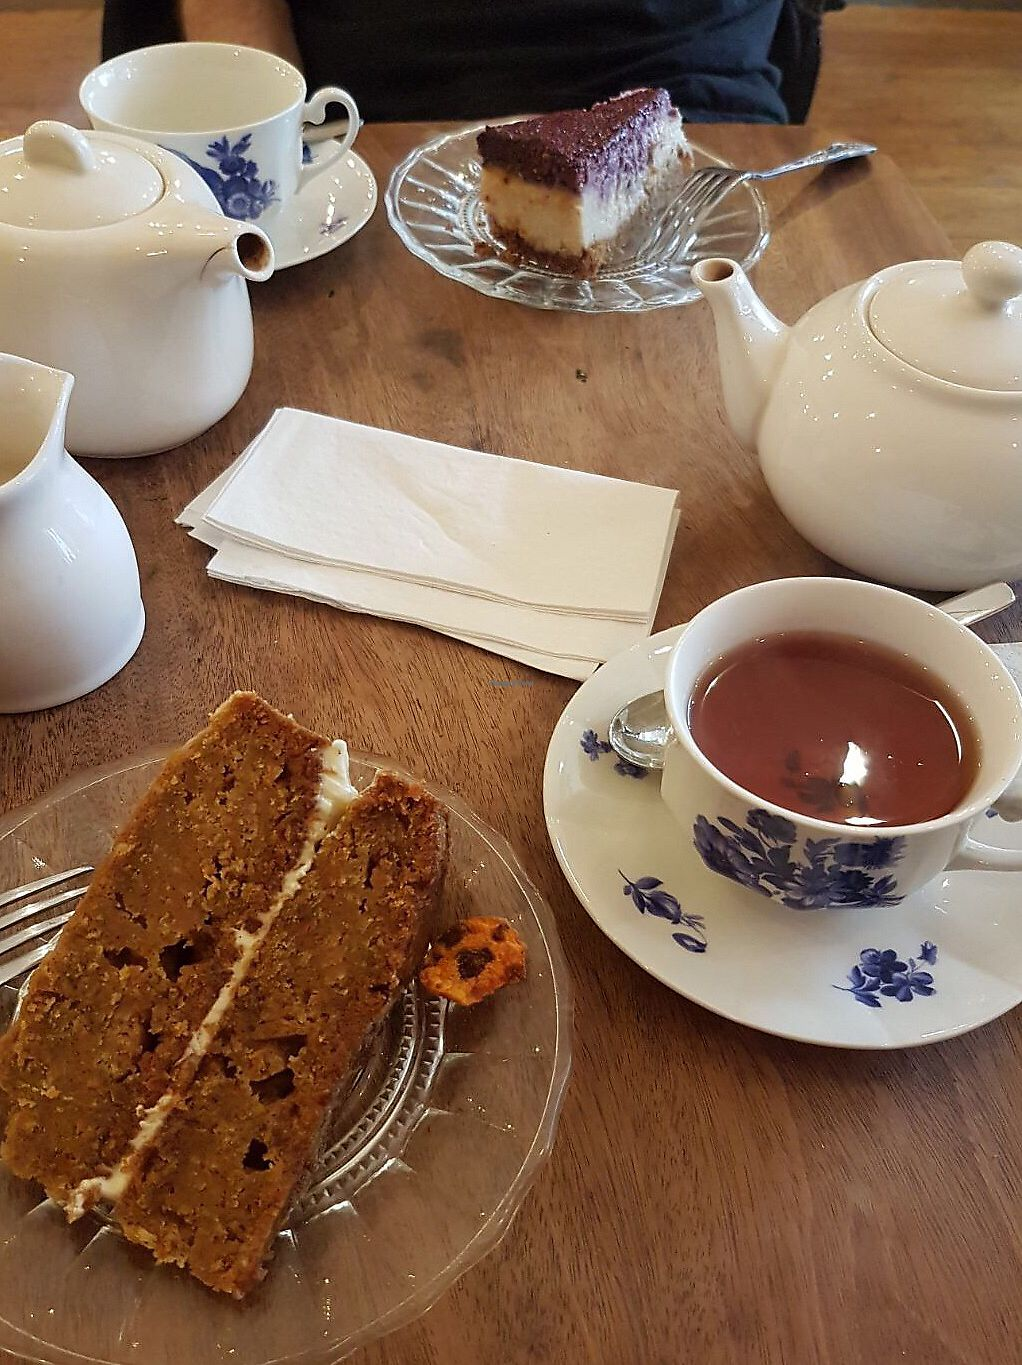 """Photo of Miranda Cafe  by <a href=""""/members/profile/lysi"""">lysi</a> <br/>Cake and tea - both gluten free & vegan  <br/> October 26, 2017  - <a href='/contact/abuse/image/95778/319128'>Report</a>"""